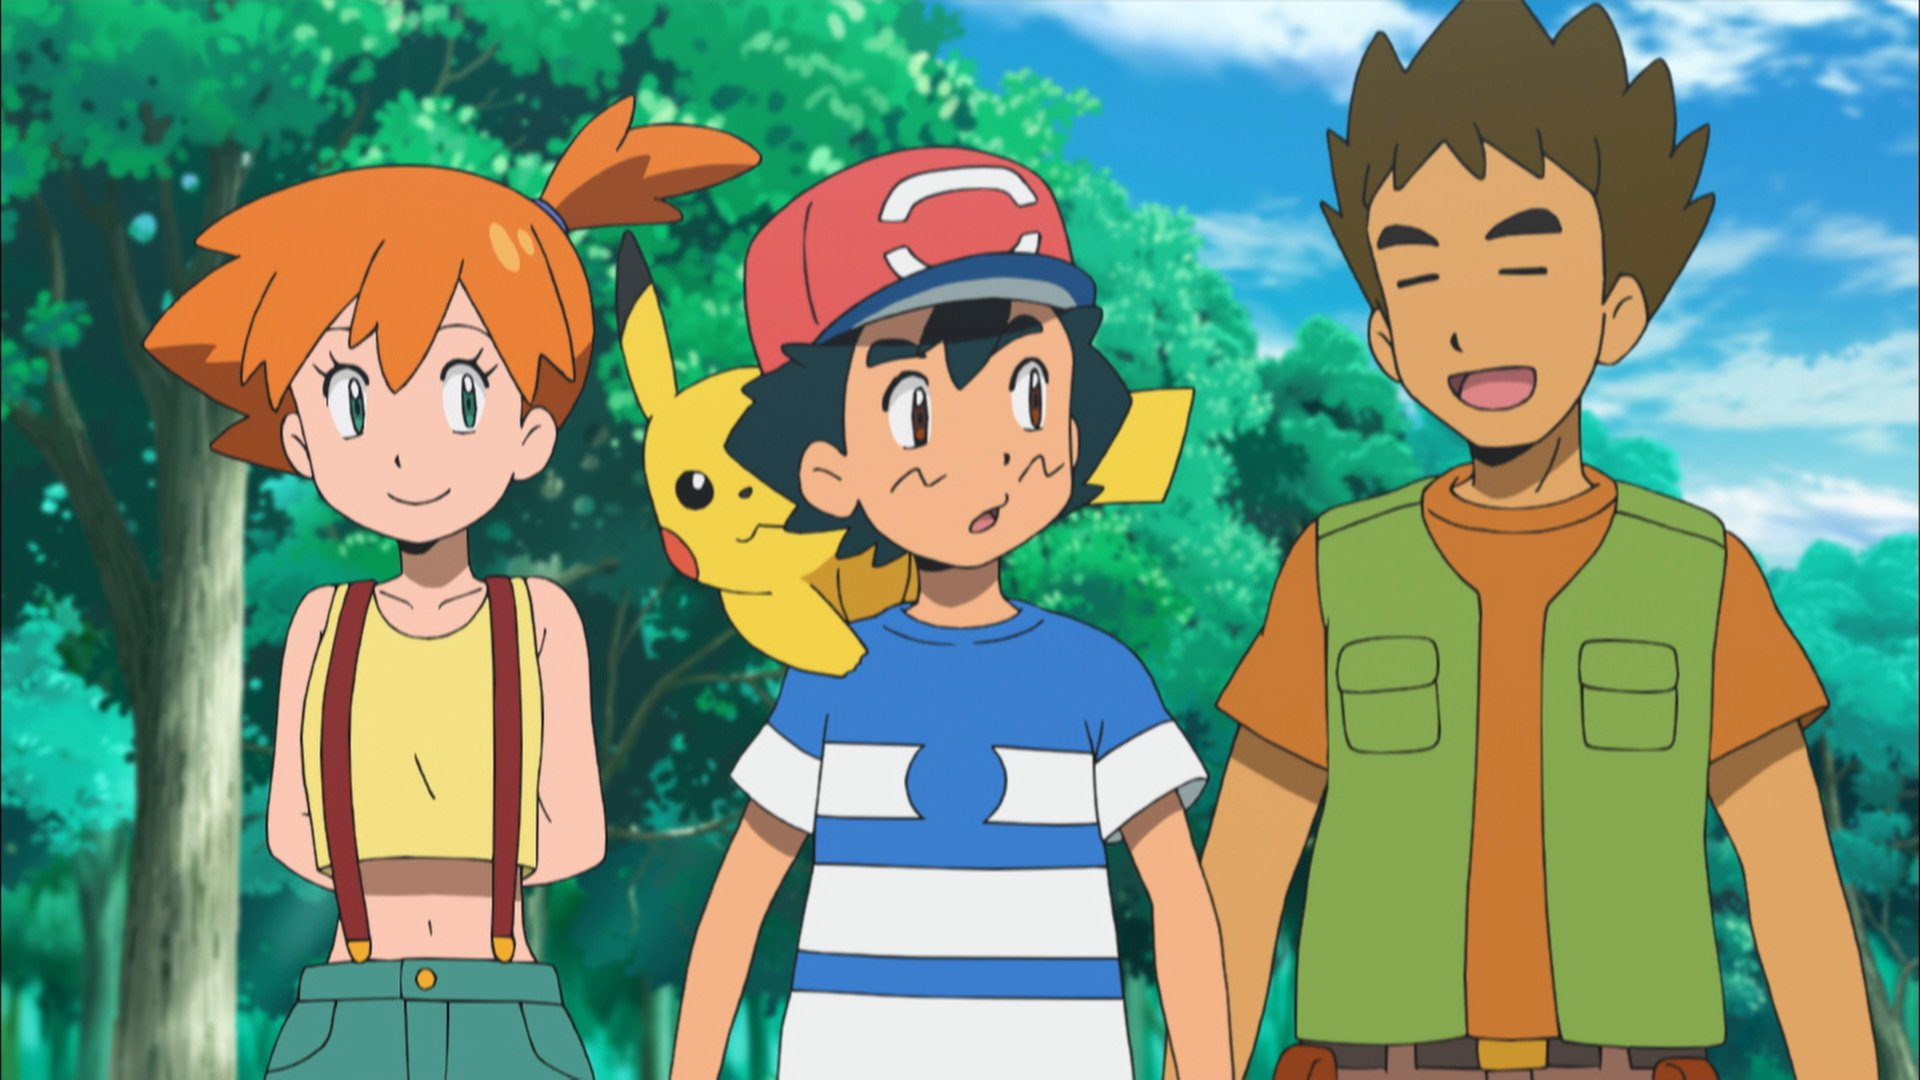 0_1504040930110_Ash, Misty and Brock.jpg